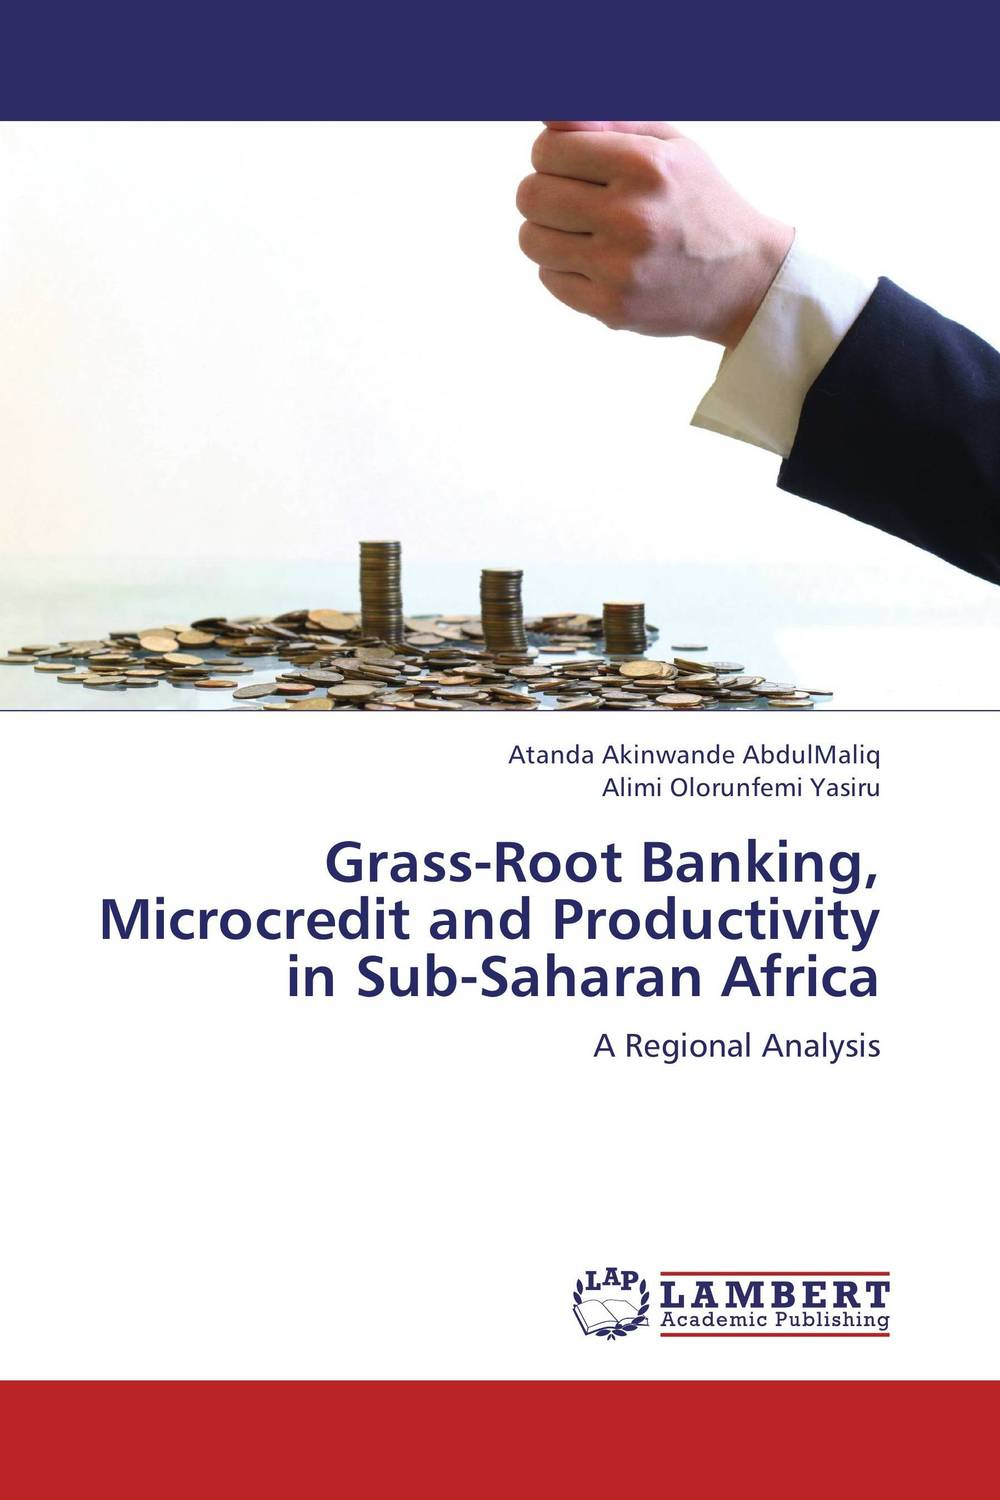 Grass-Root Banking, Microcredit and Productivity in Sub-Saharan Africa the teeth with root canal students to practice root canal preparation and filling actually